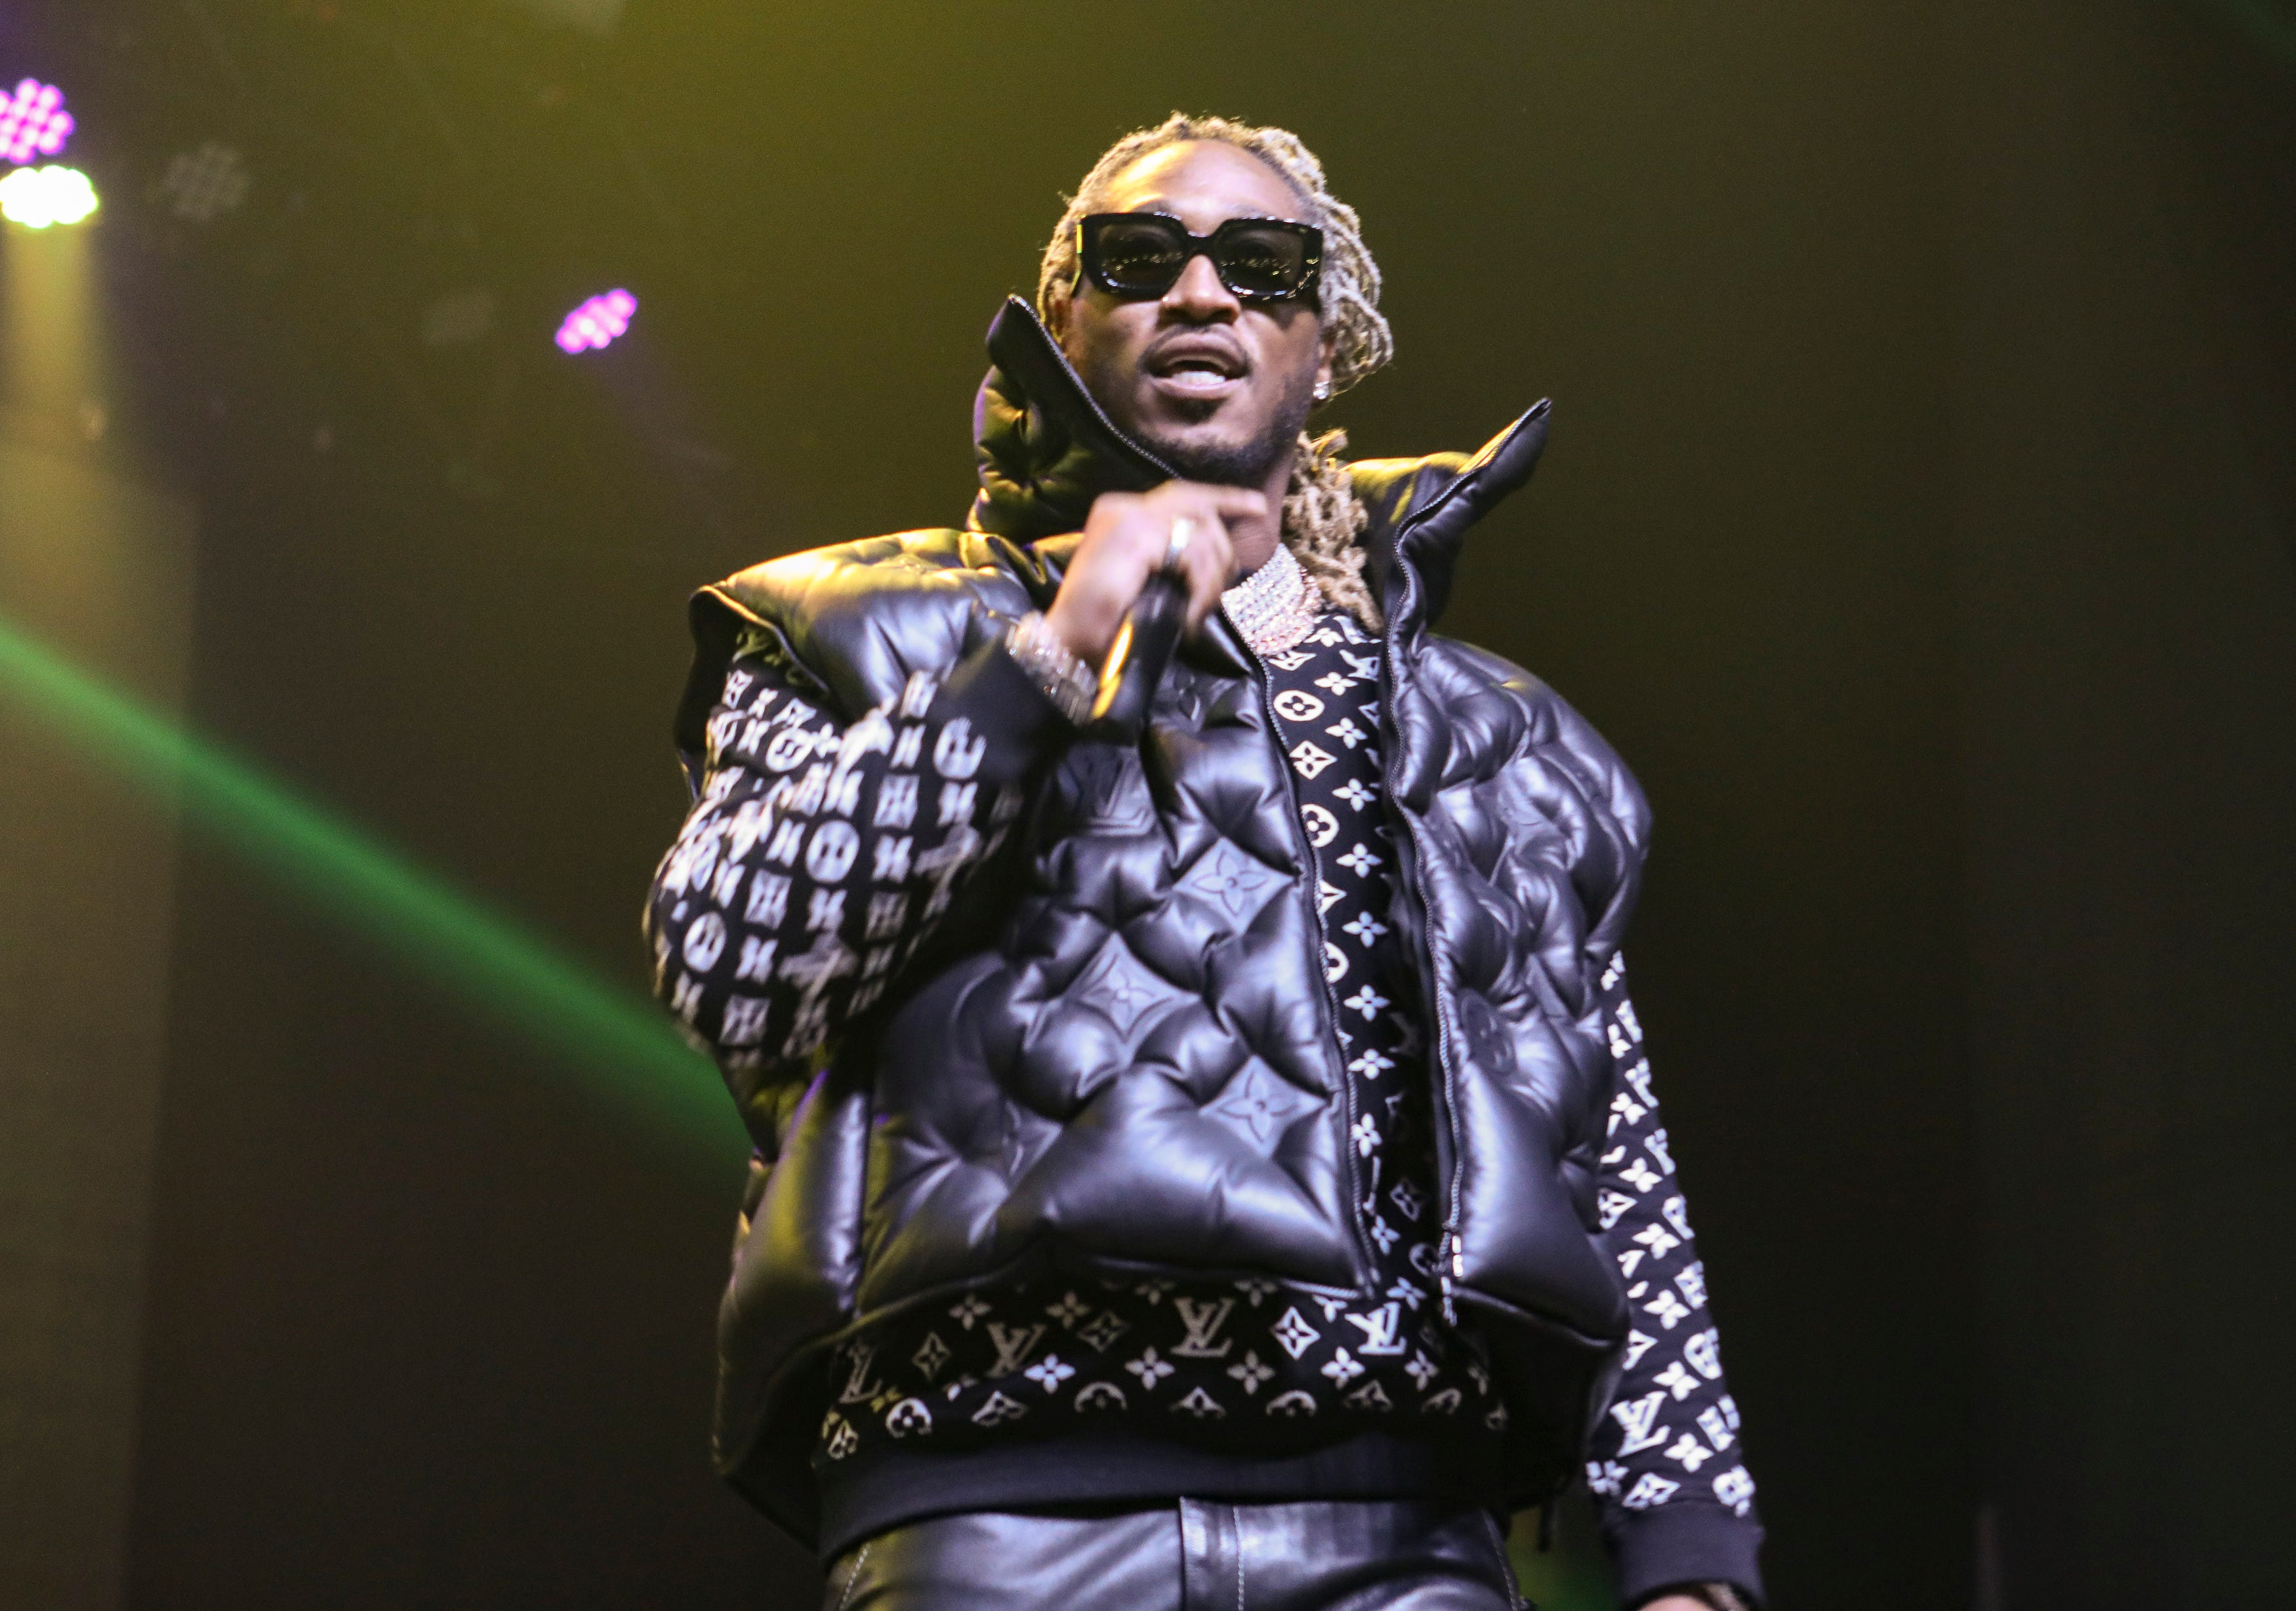 Future performs during the No Place Like Home Tour at the Coca-Cola Roxy on Sunday, January 19, 2020, in Atlanta.